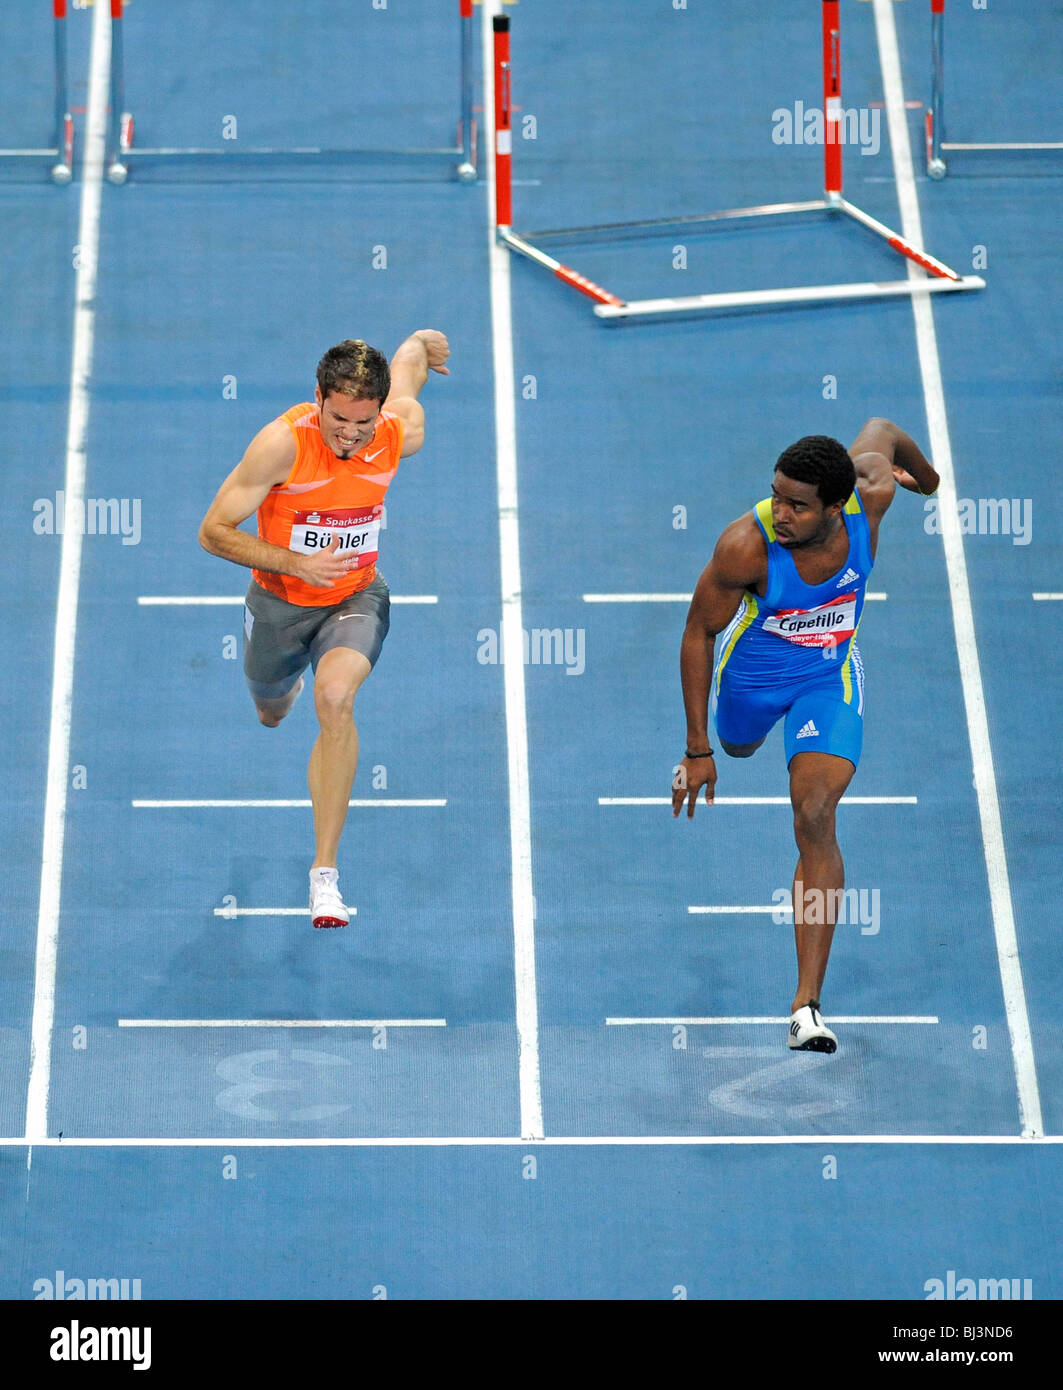 Men's Hurdles, finish, left to right: Matthias BUEHLER, GER, Dayron Capetillo, CUB, Sparkassen-Cup 2010 tournament, - Stock Image